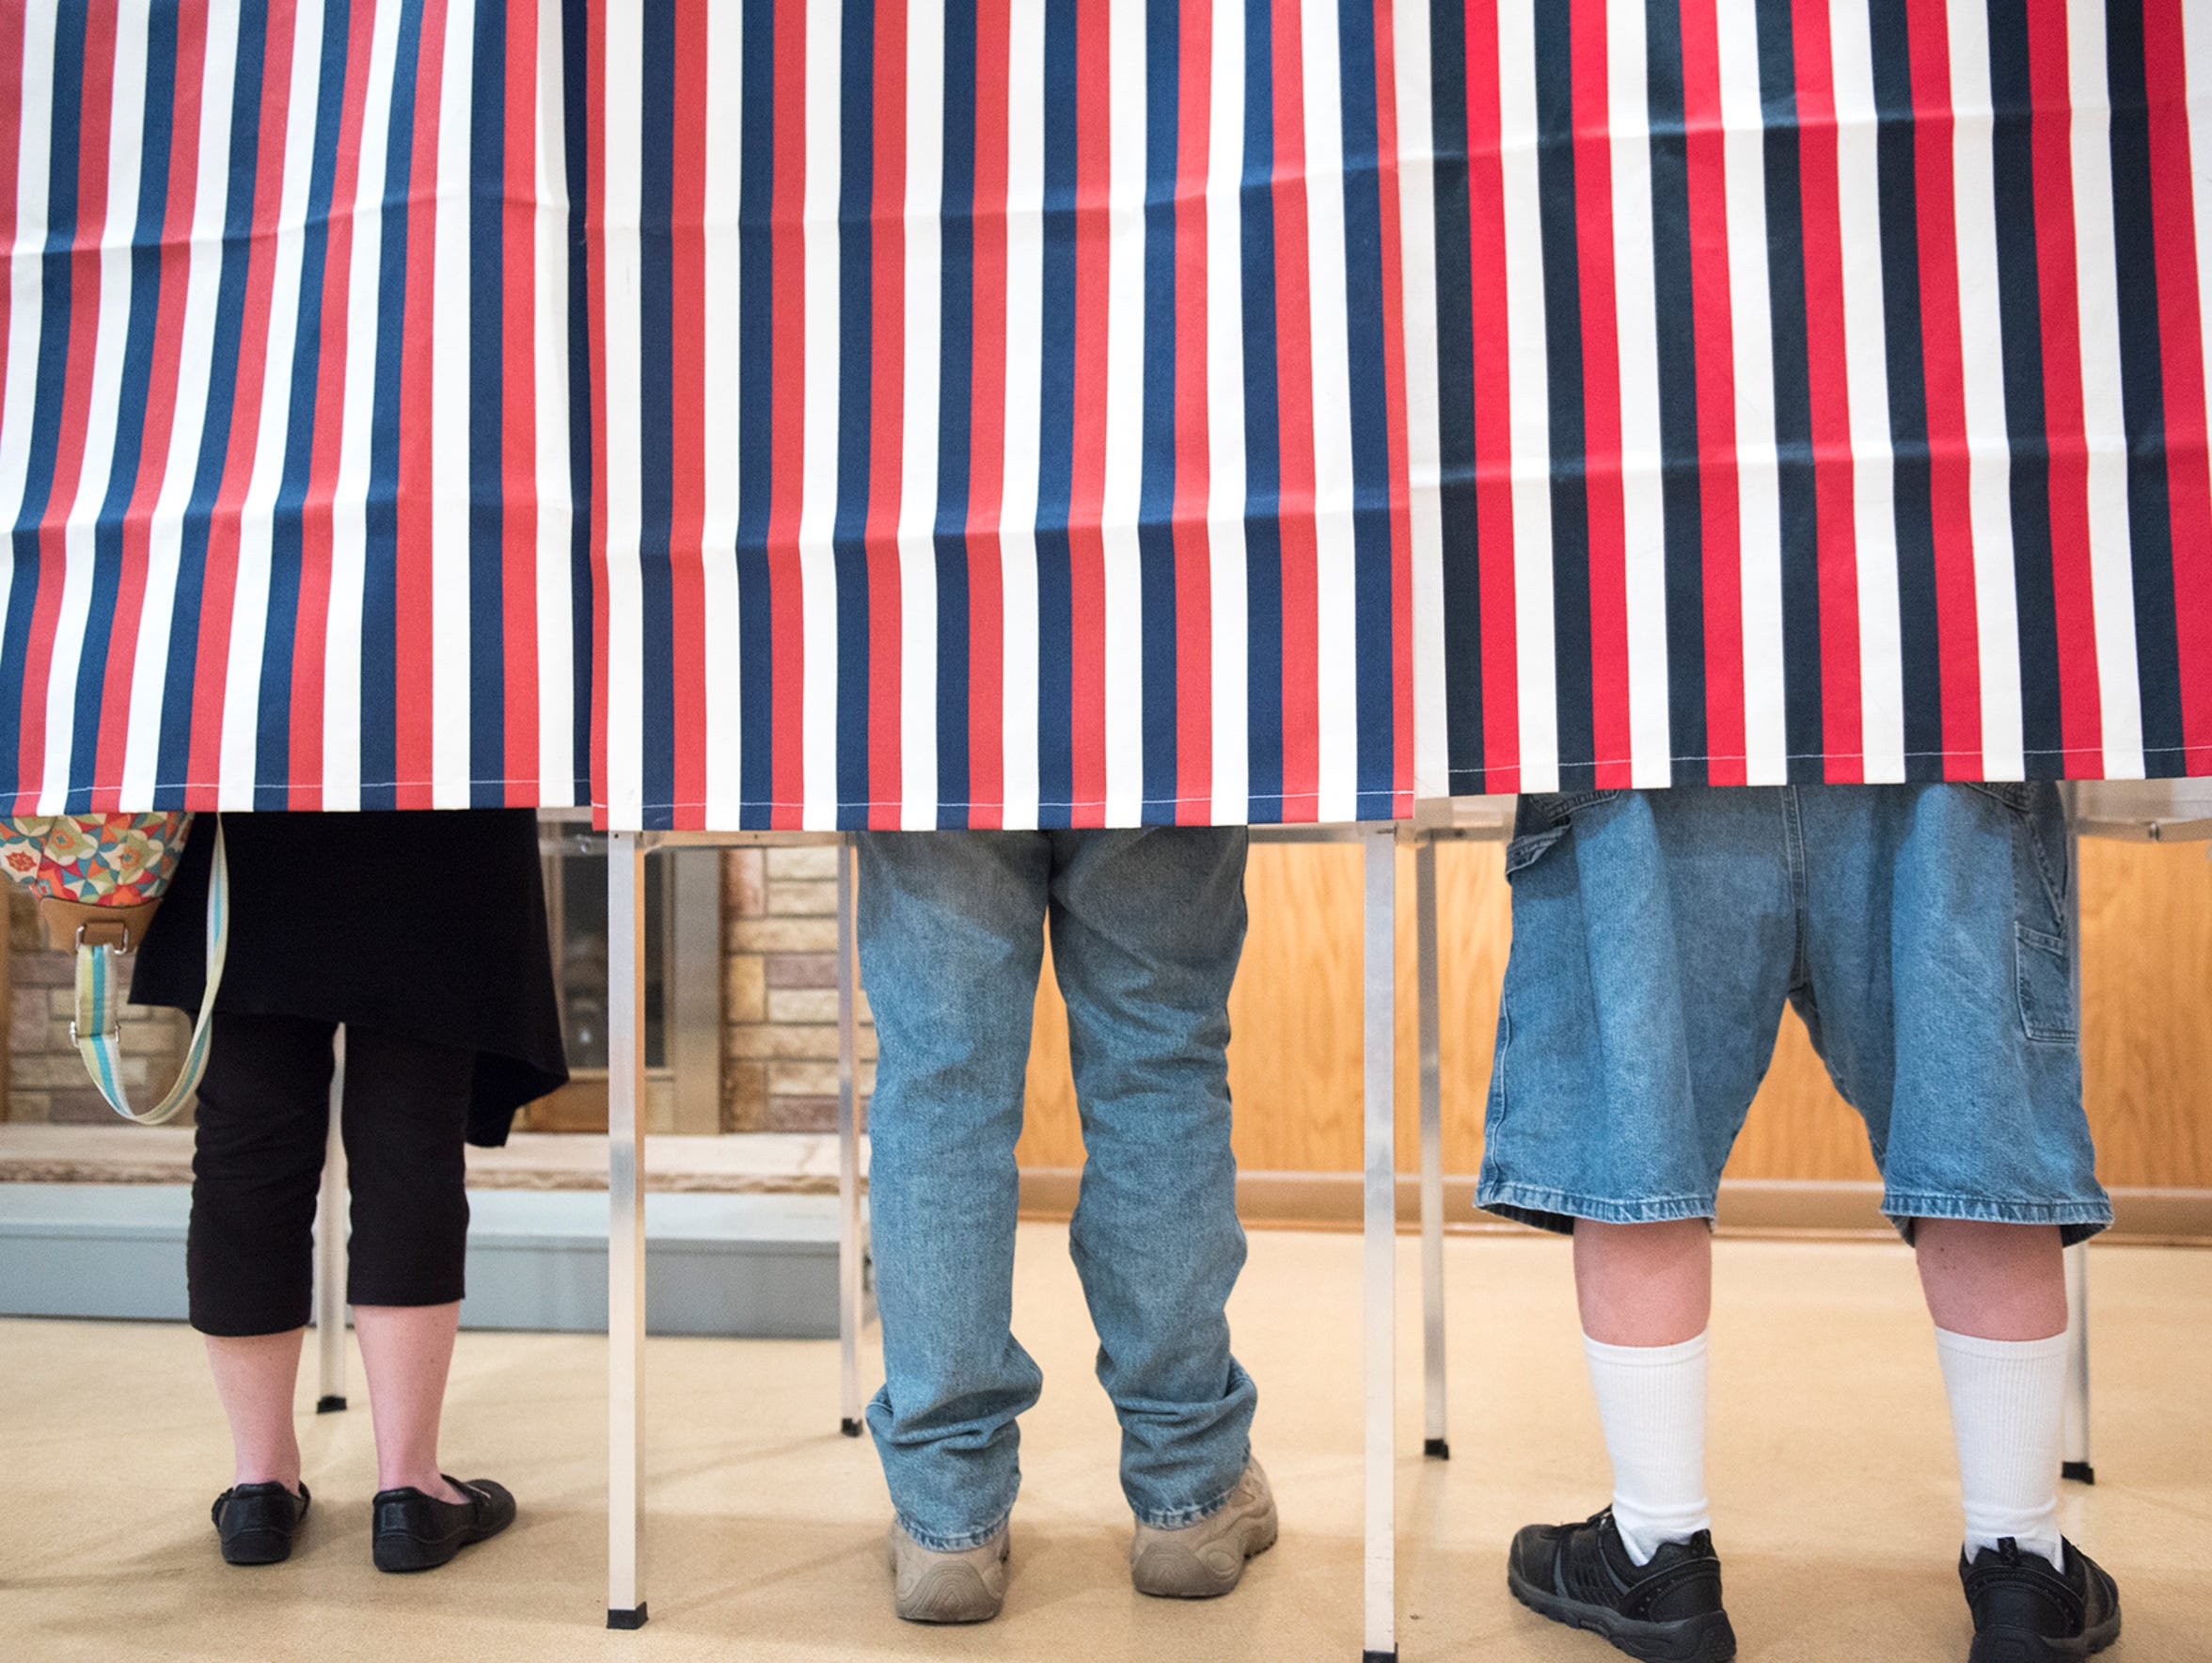 Constituents of the borough of Mercersburg voted in the primaries behind closed curtains at MMP&W Volunteer Fire Co. Activity Center in Mercersburg, Pa. on Tuesday, April 26, 2016.